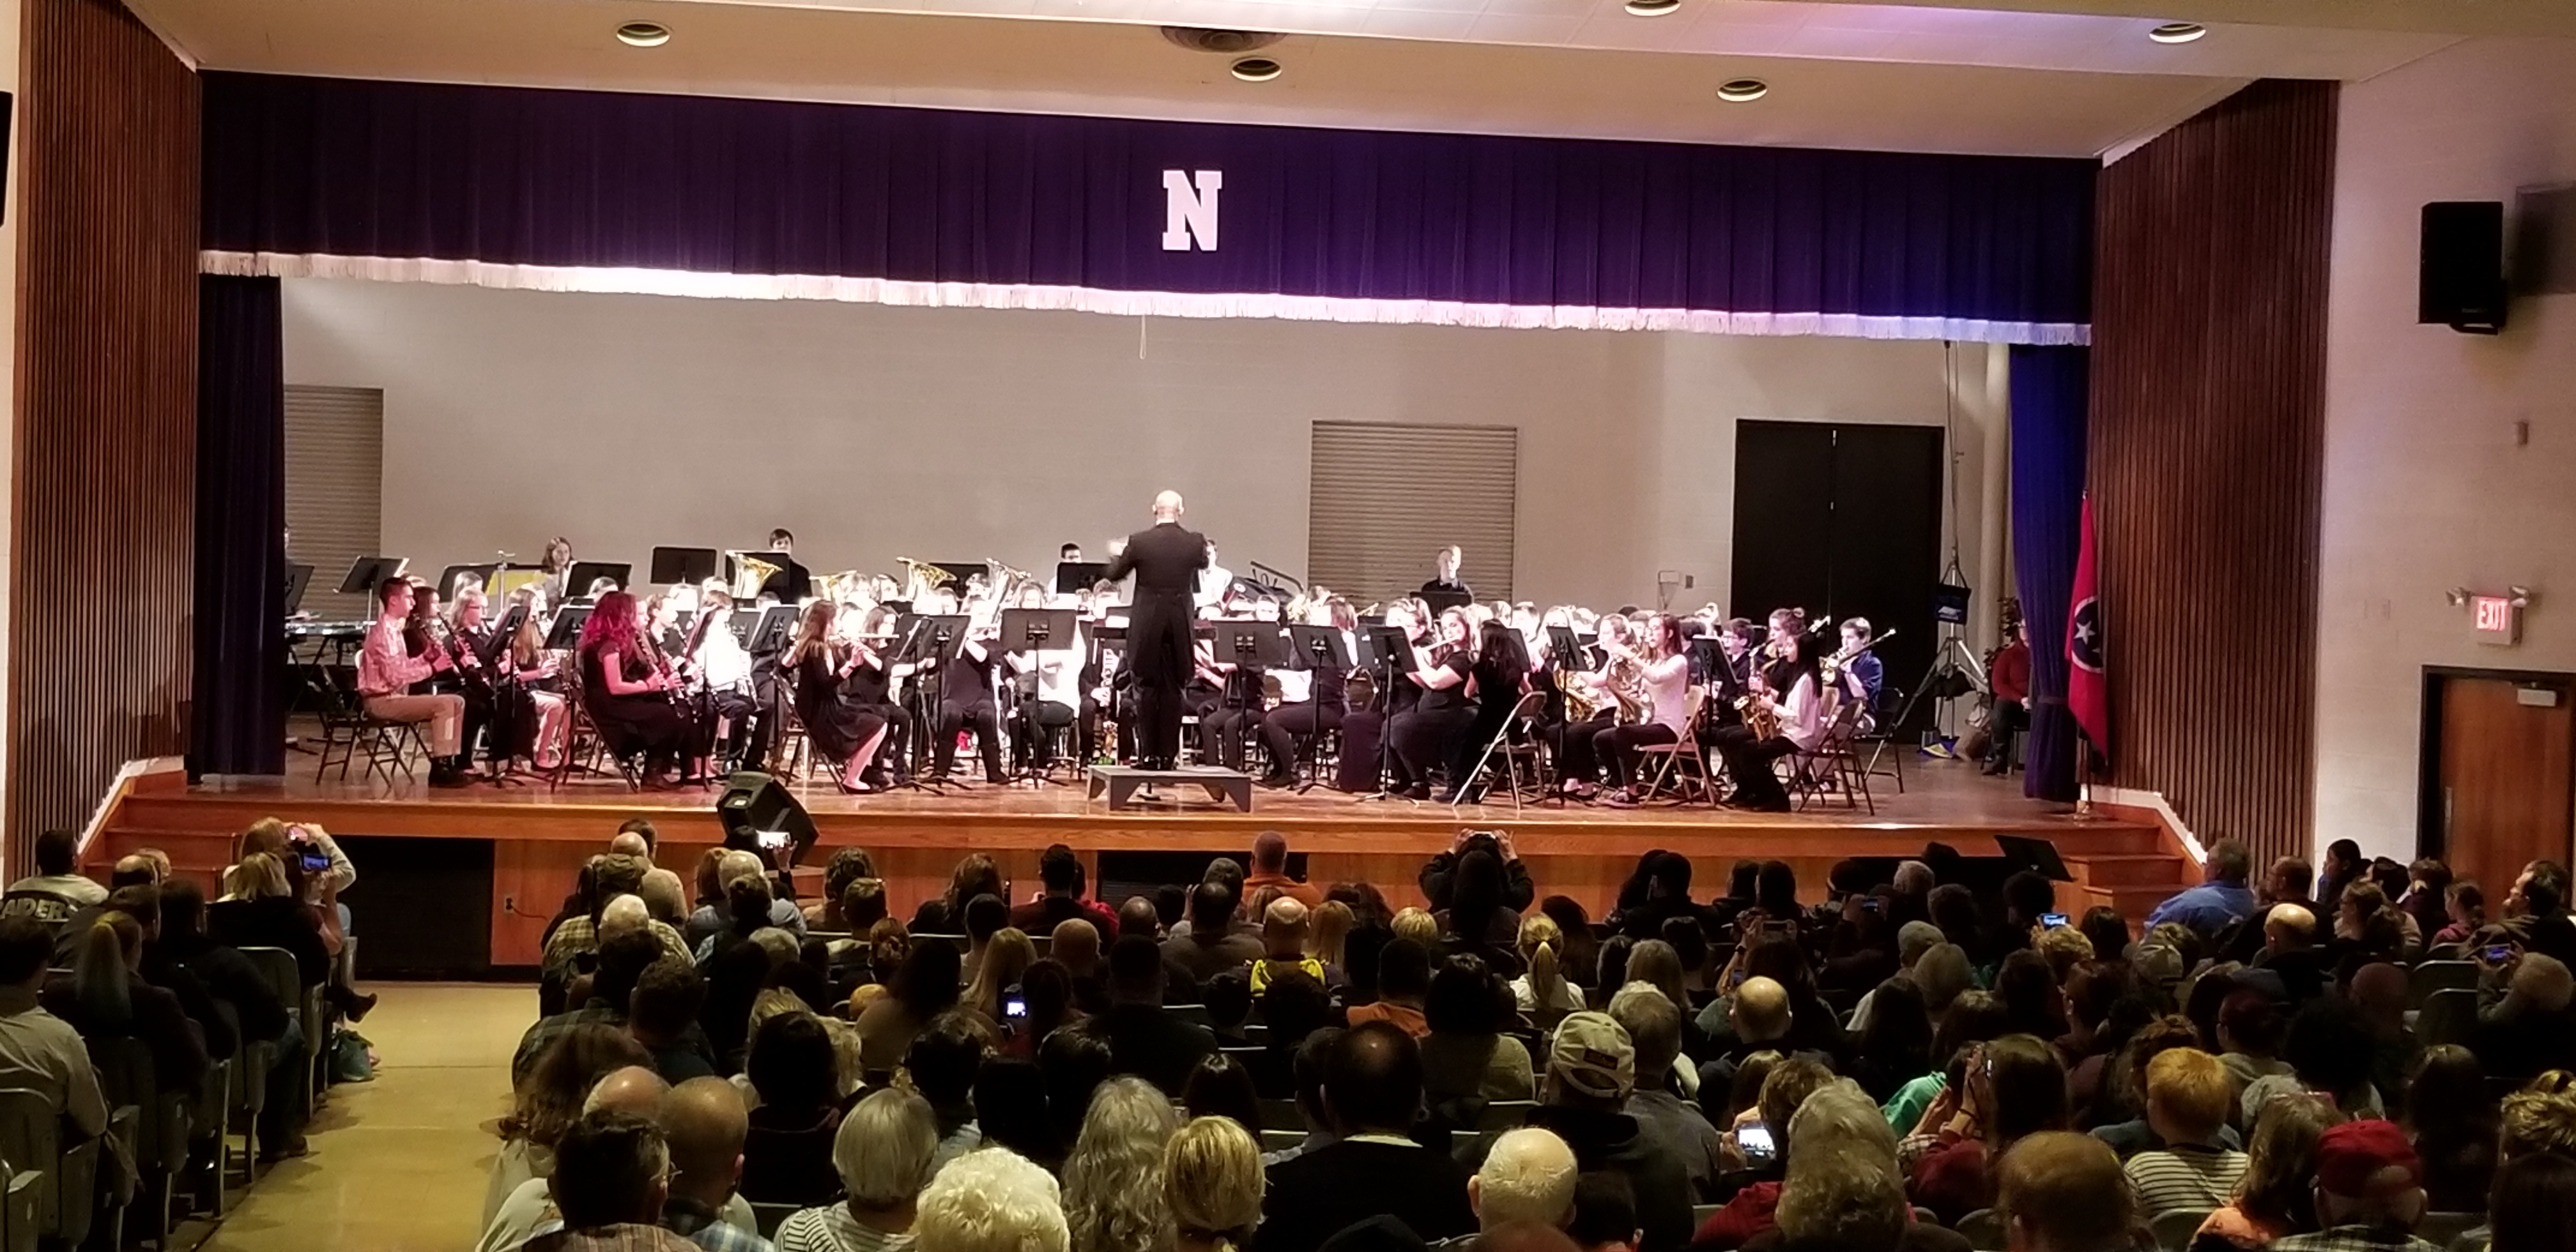 Knox County Middle School Honors Band Concert, January 18, 2019